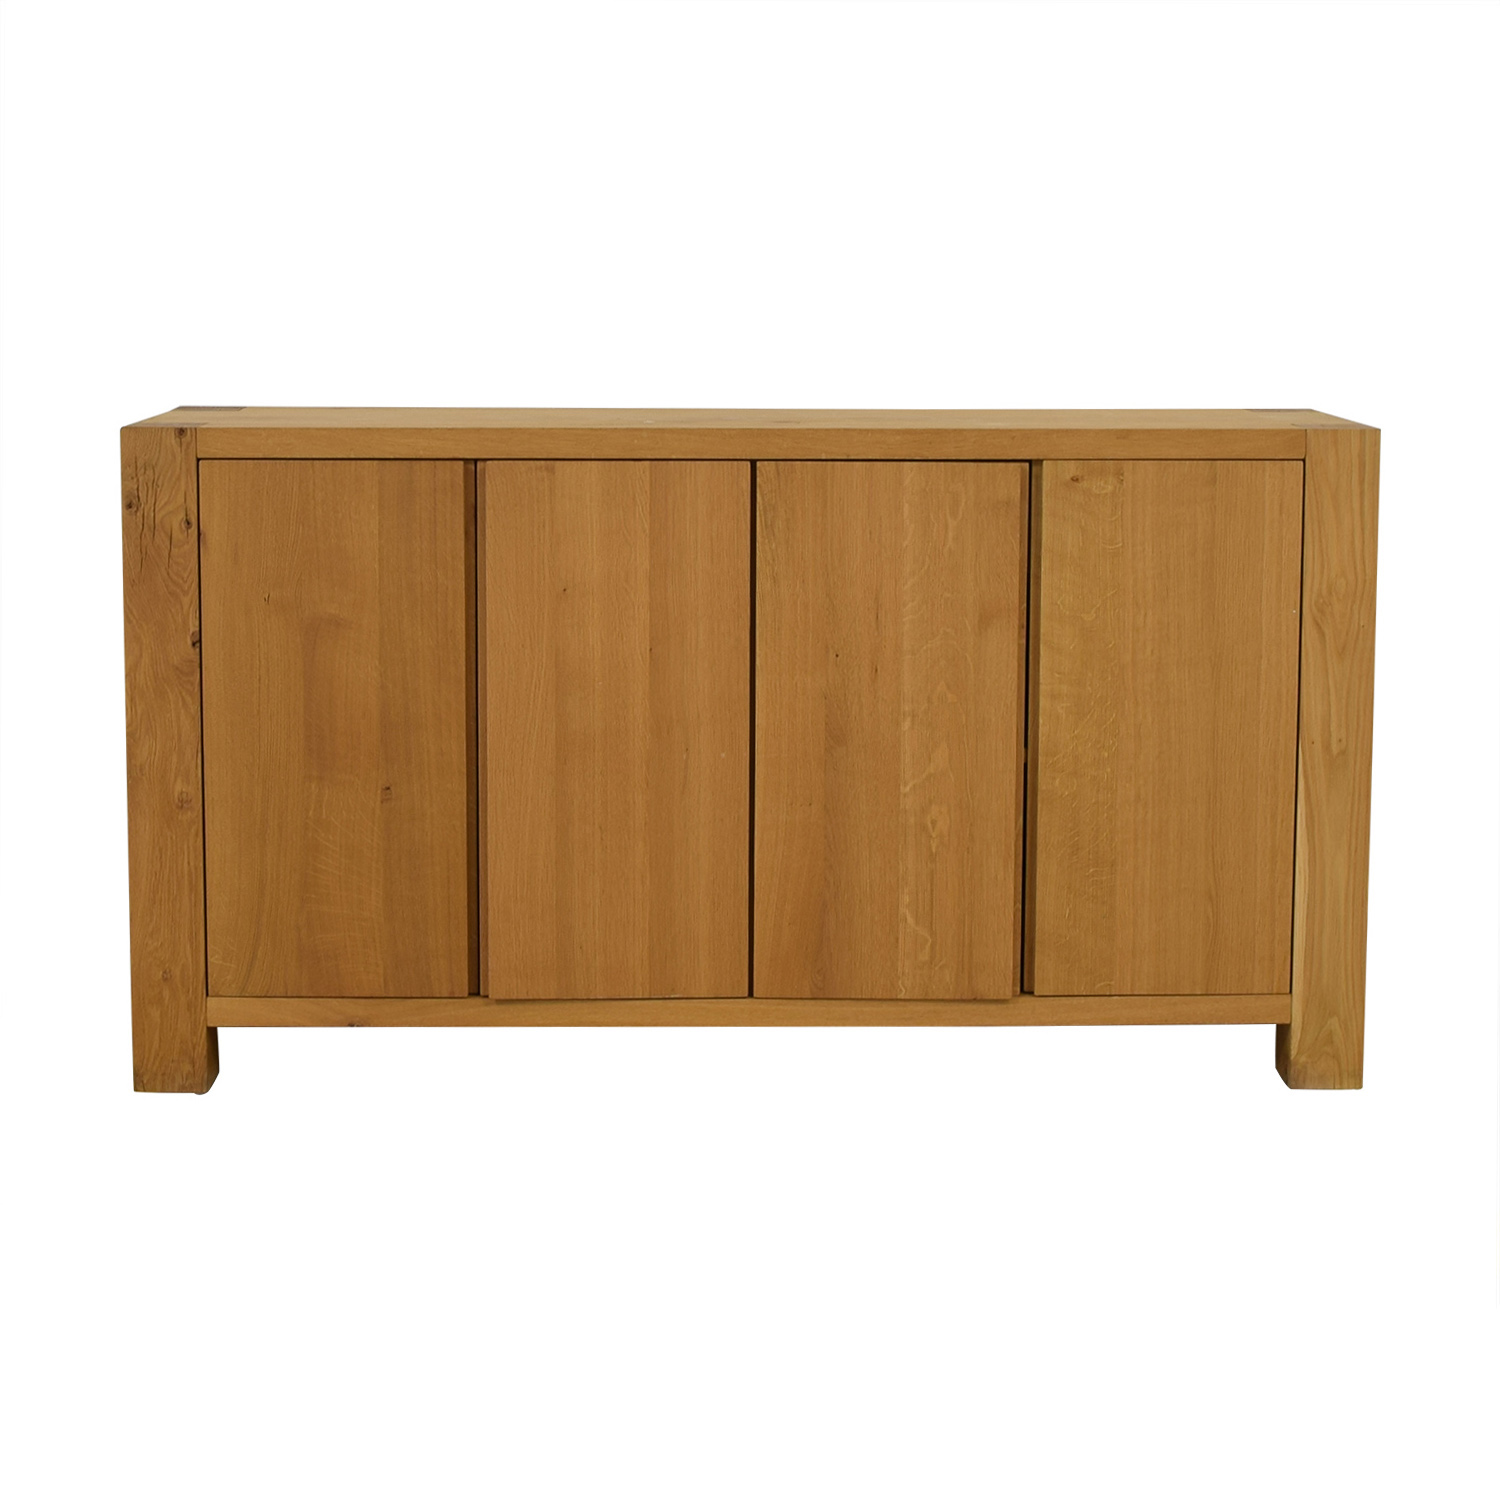 Crate & Barrel Crate & Barrel Big Sur Sideboard light brown